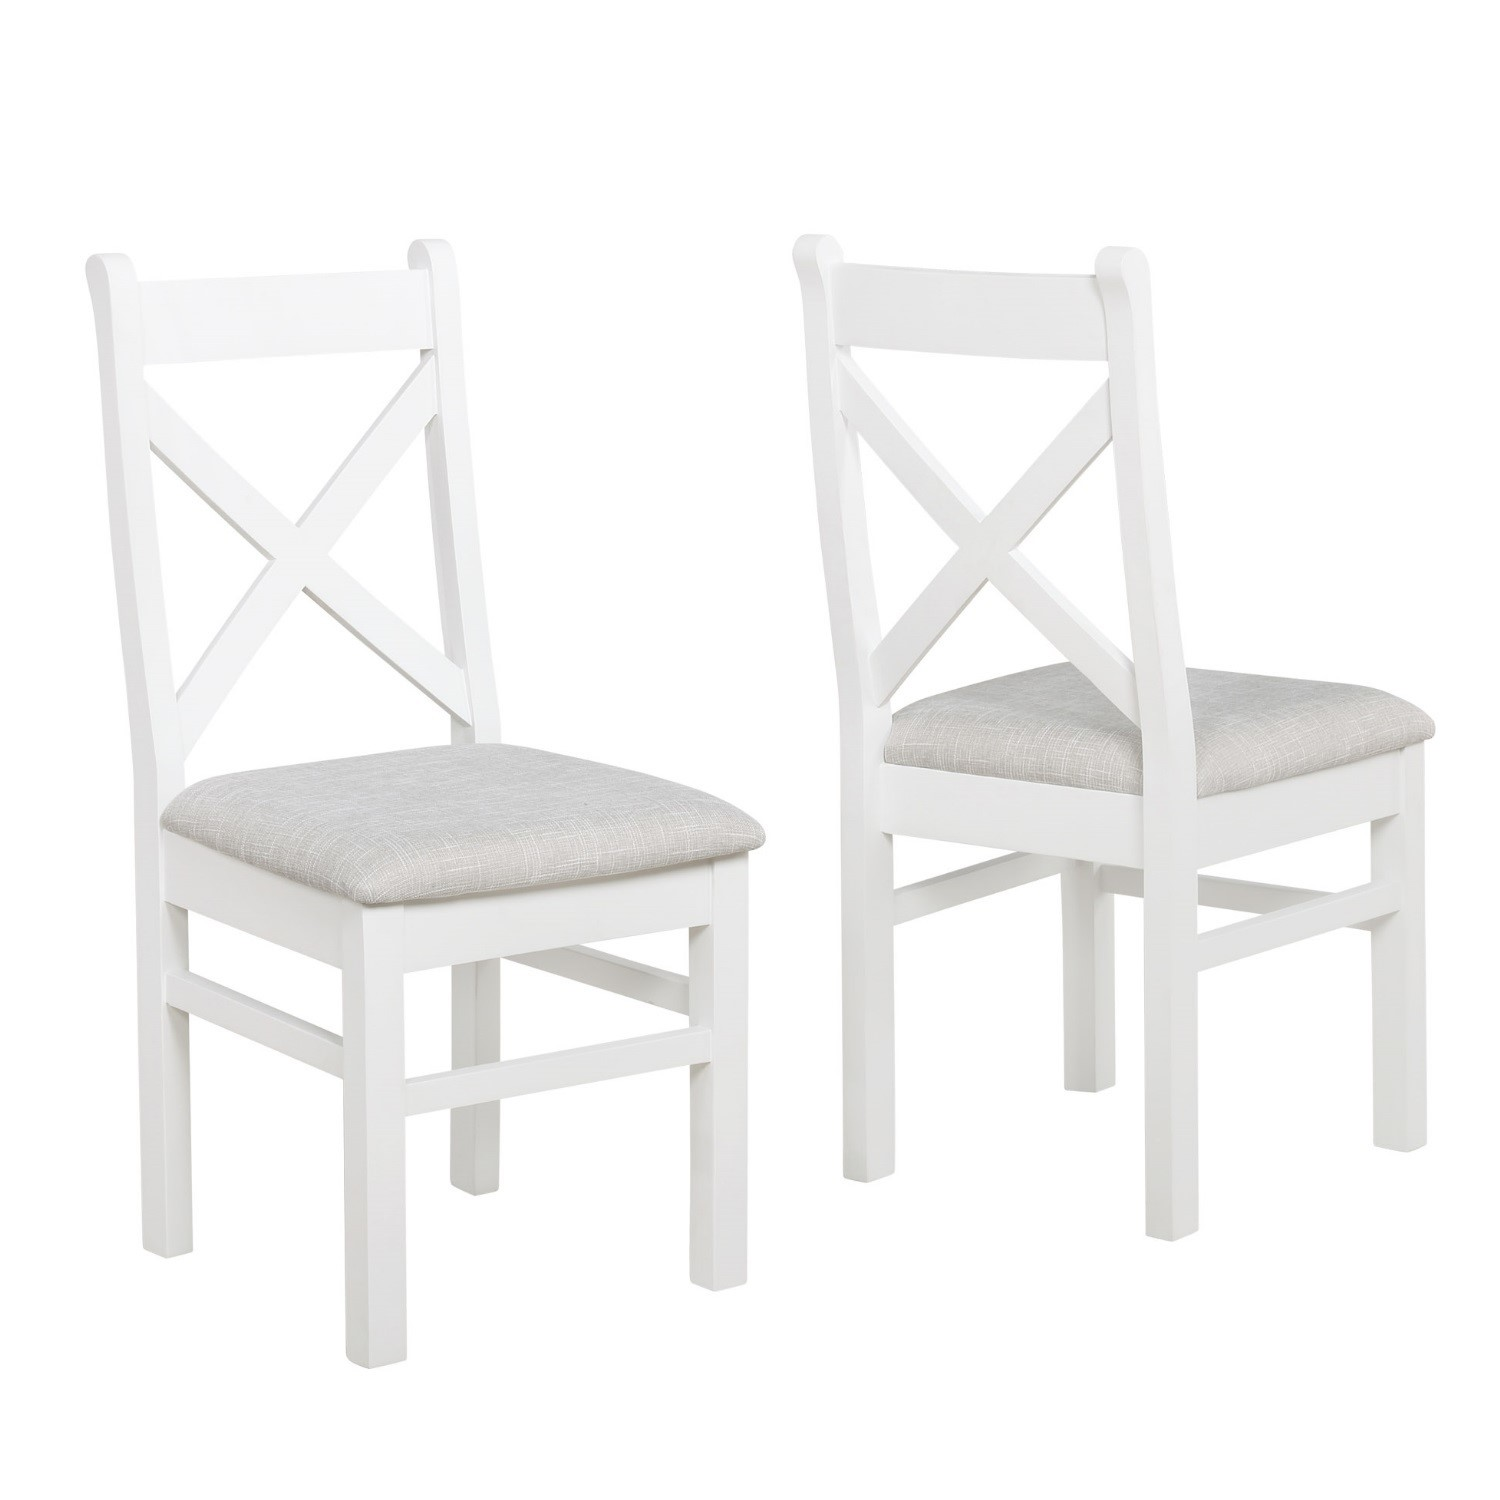 Aylesbury Pair Of White Wooden Dining Chairs With Cushioned Seat